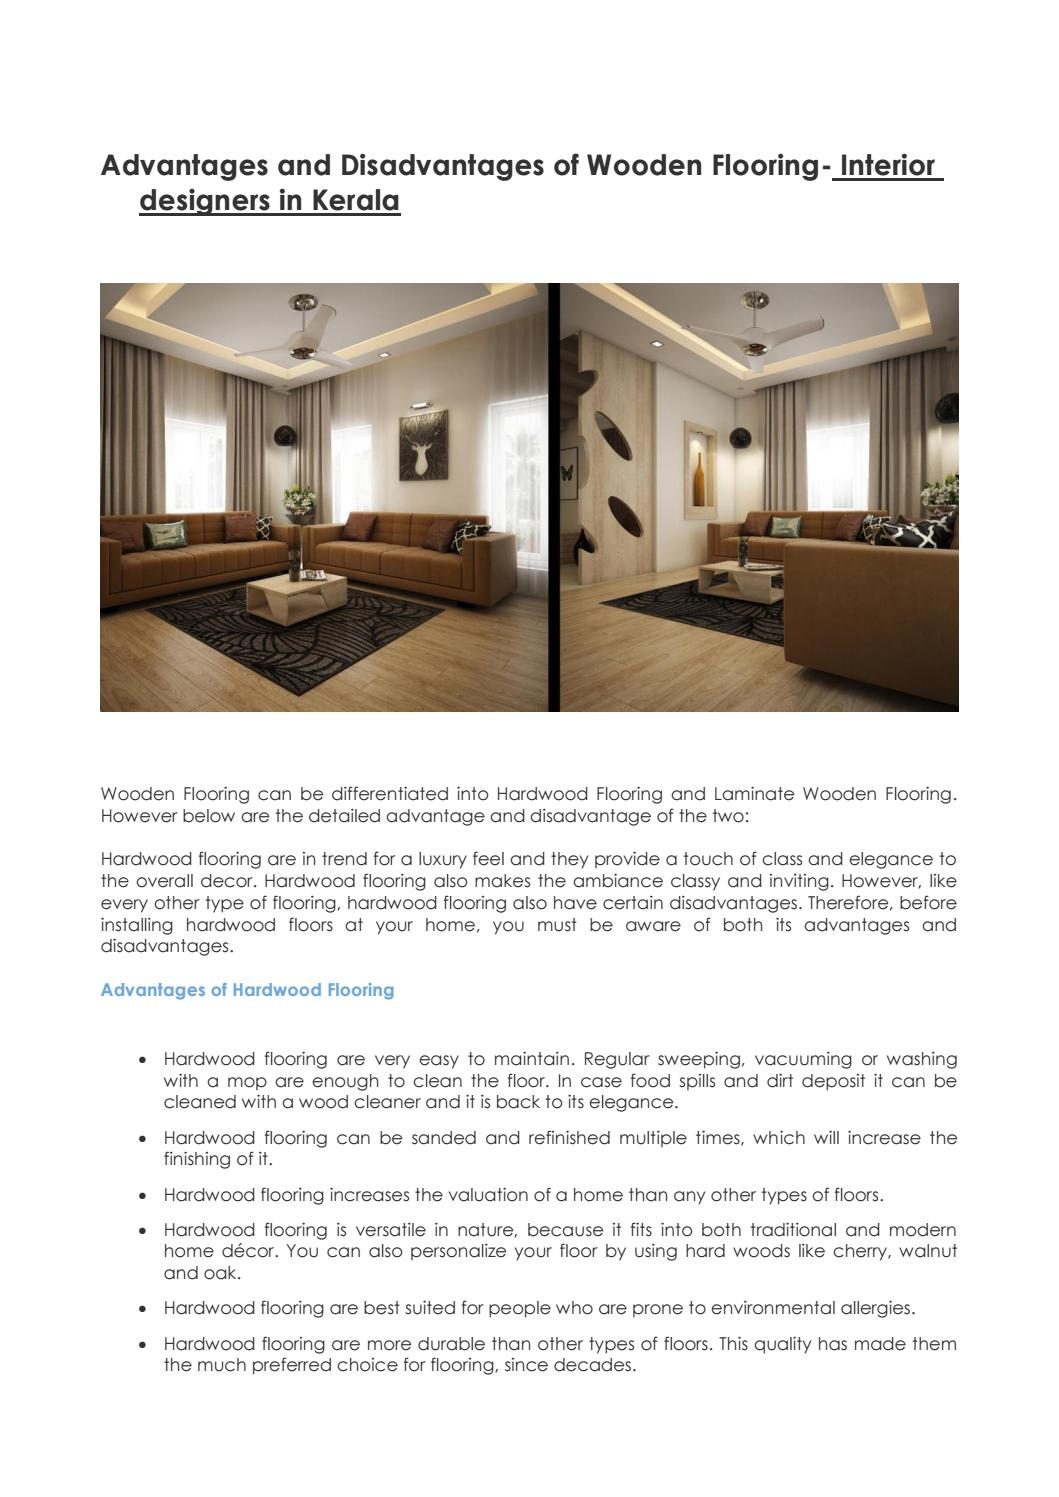 Advantages And Disadvantages Of Wooden Flooring Interior Designers In Kerala By Monnaie Offpage Issuu